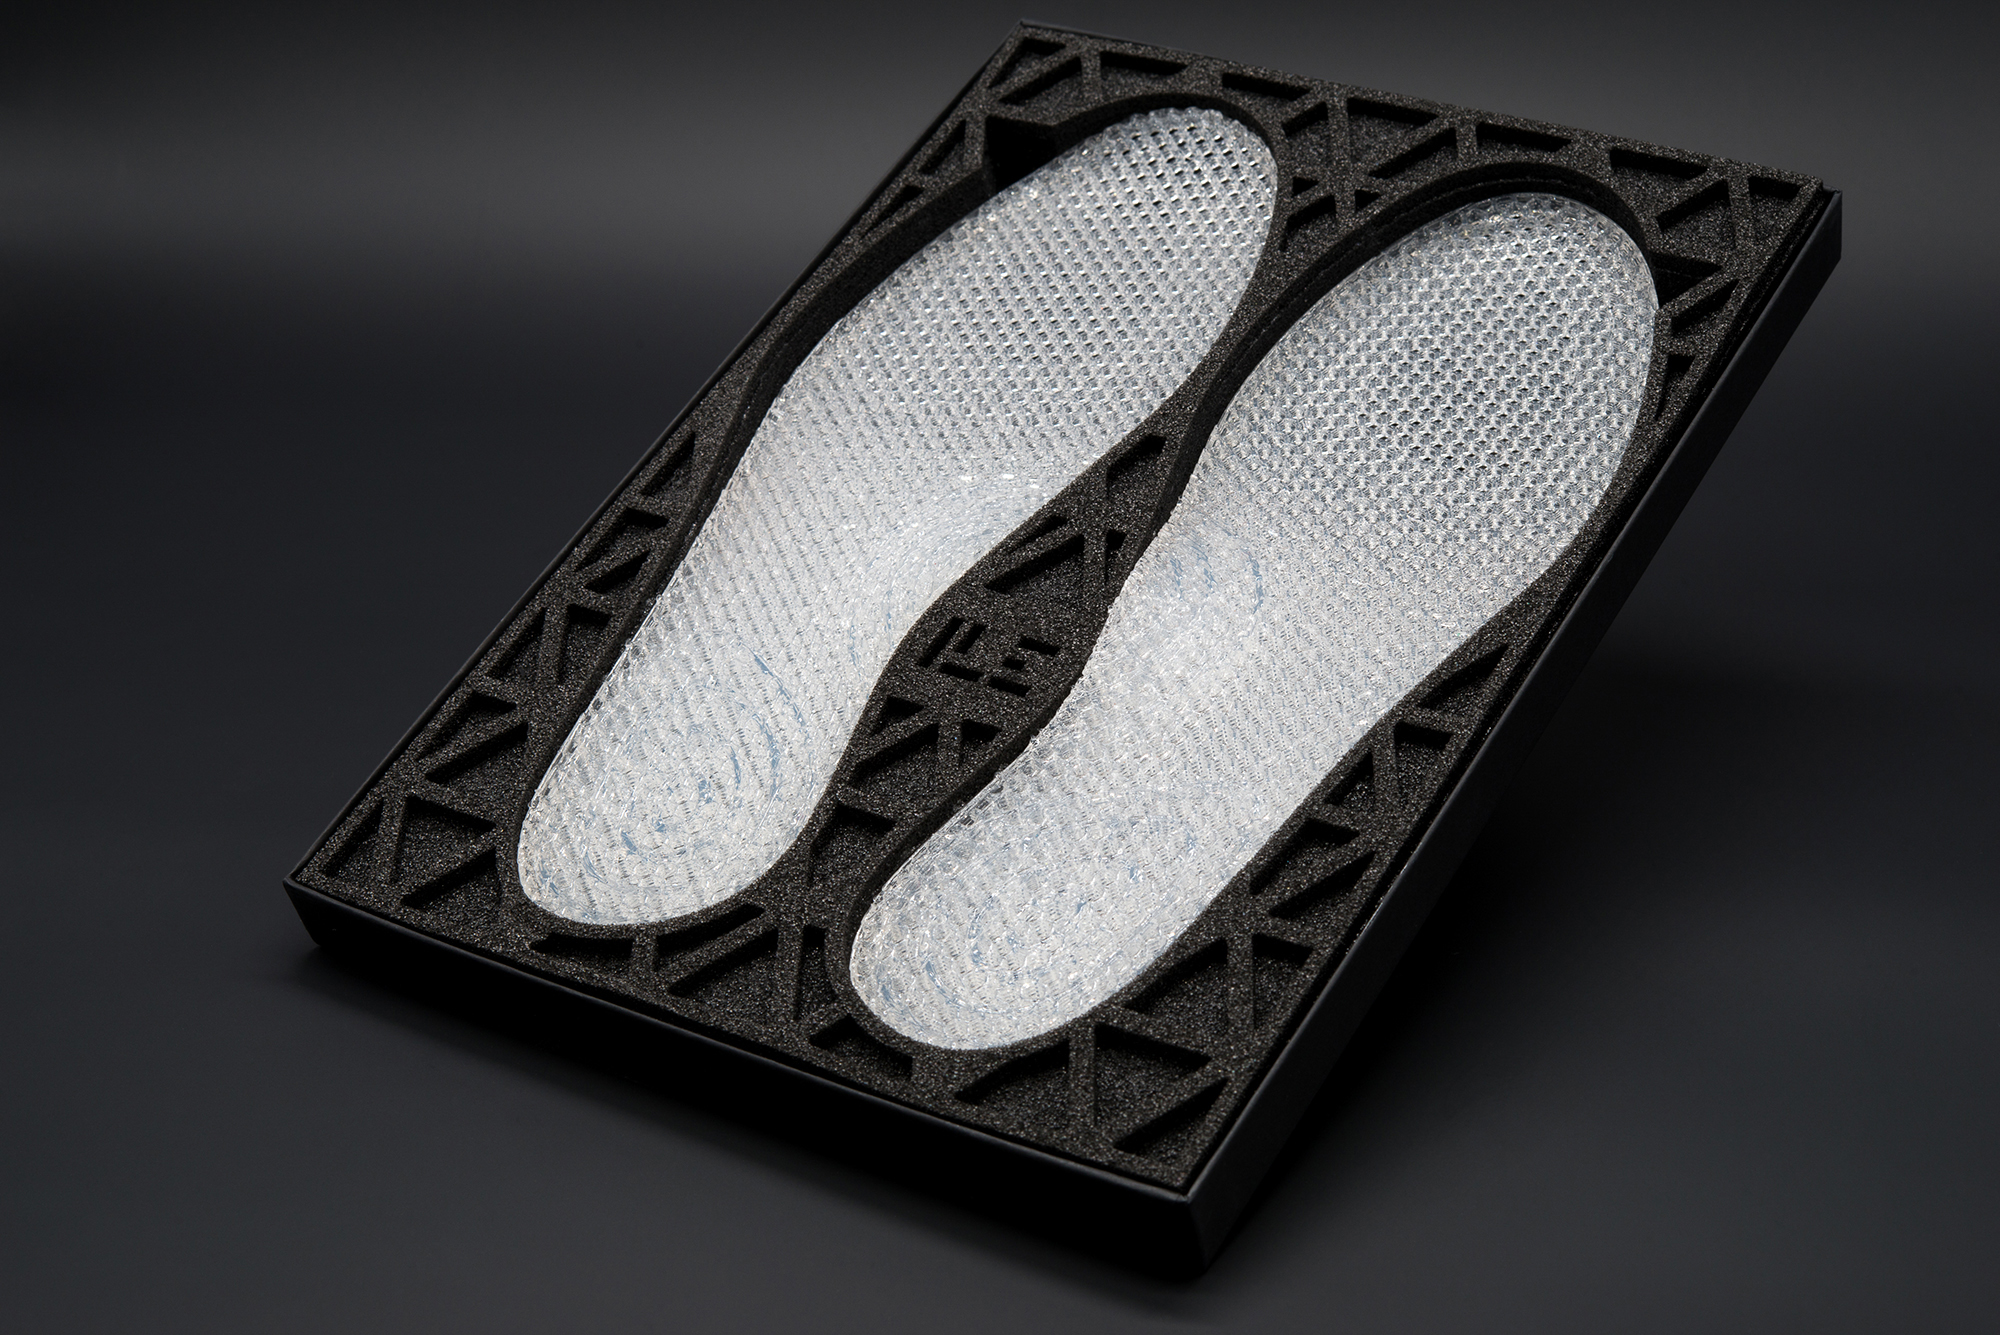 Quant-U silicone midsoles. Photo via Ecco.